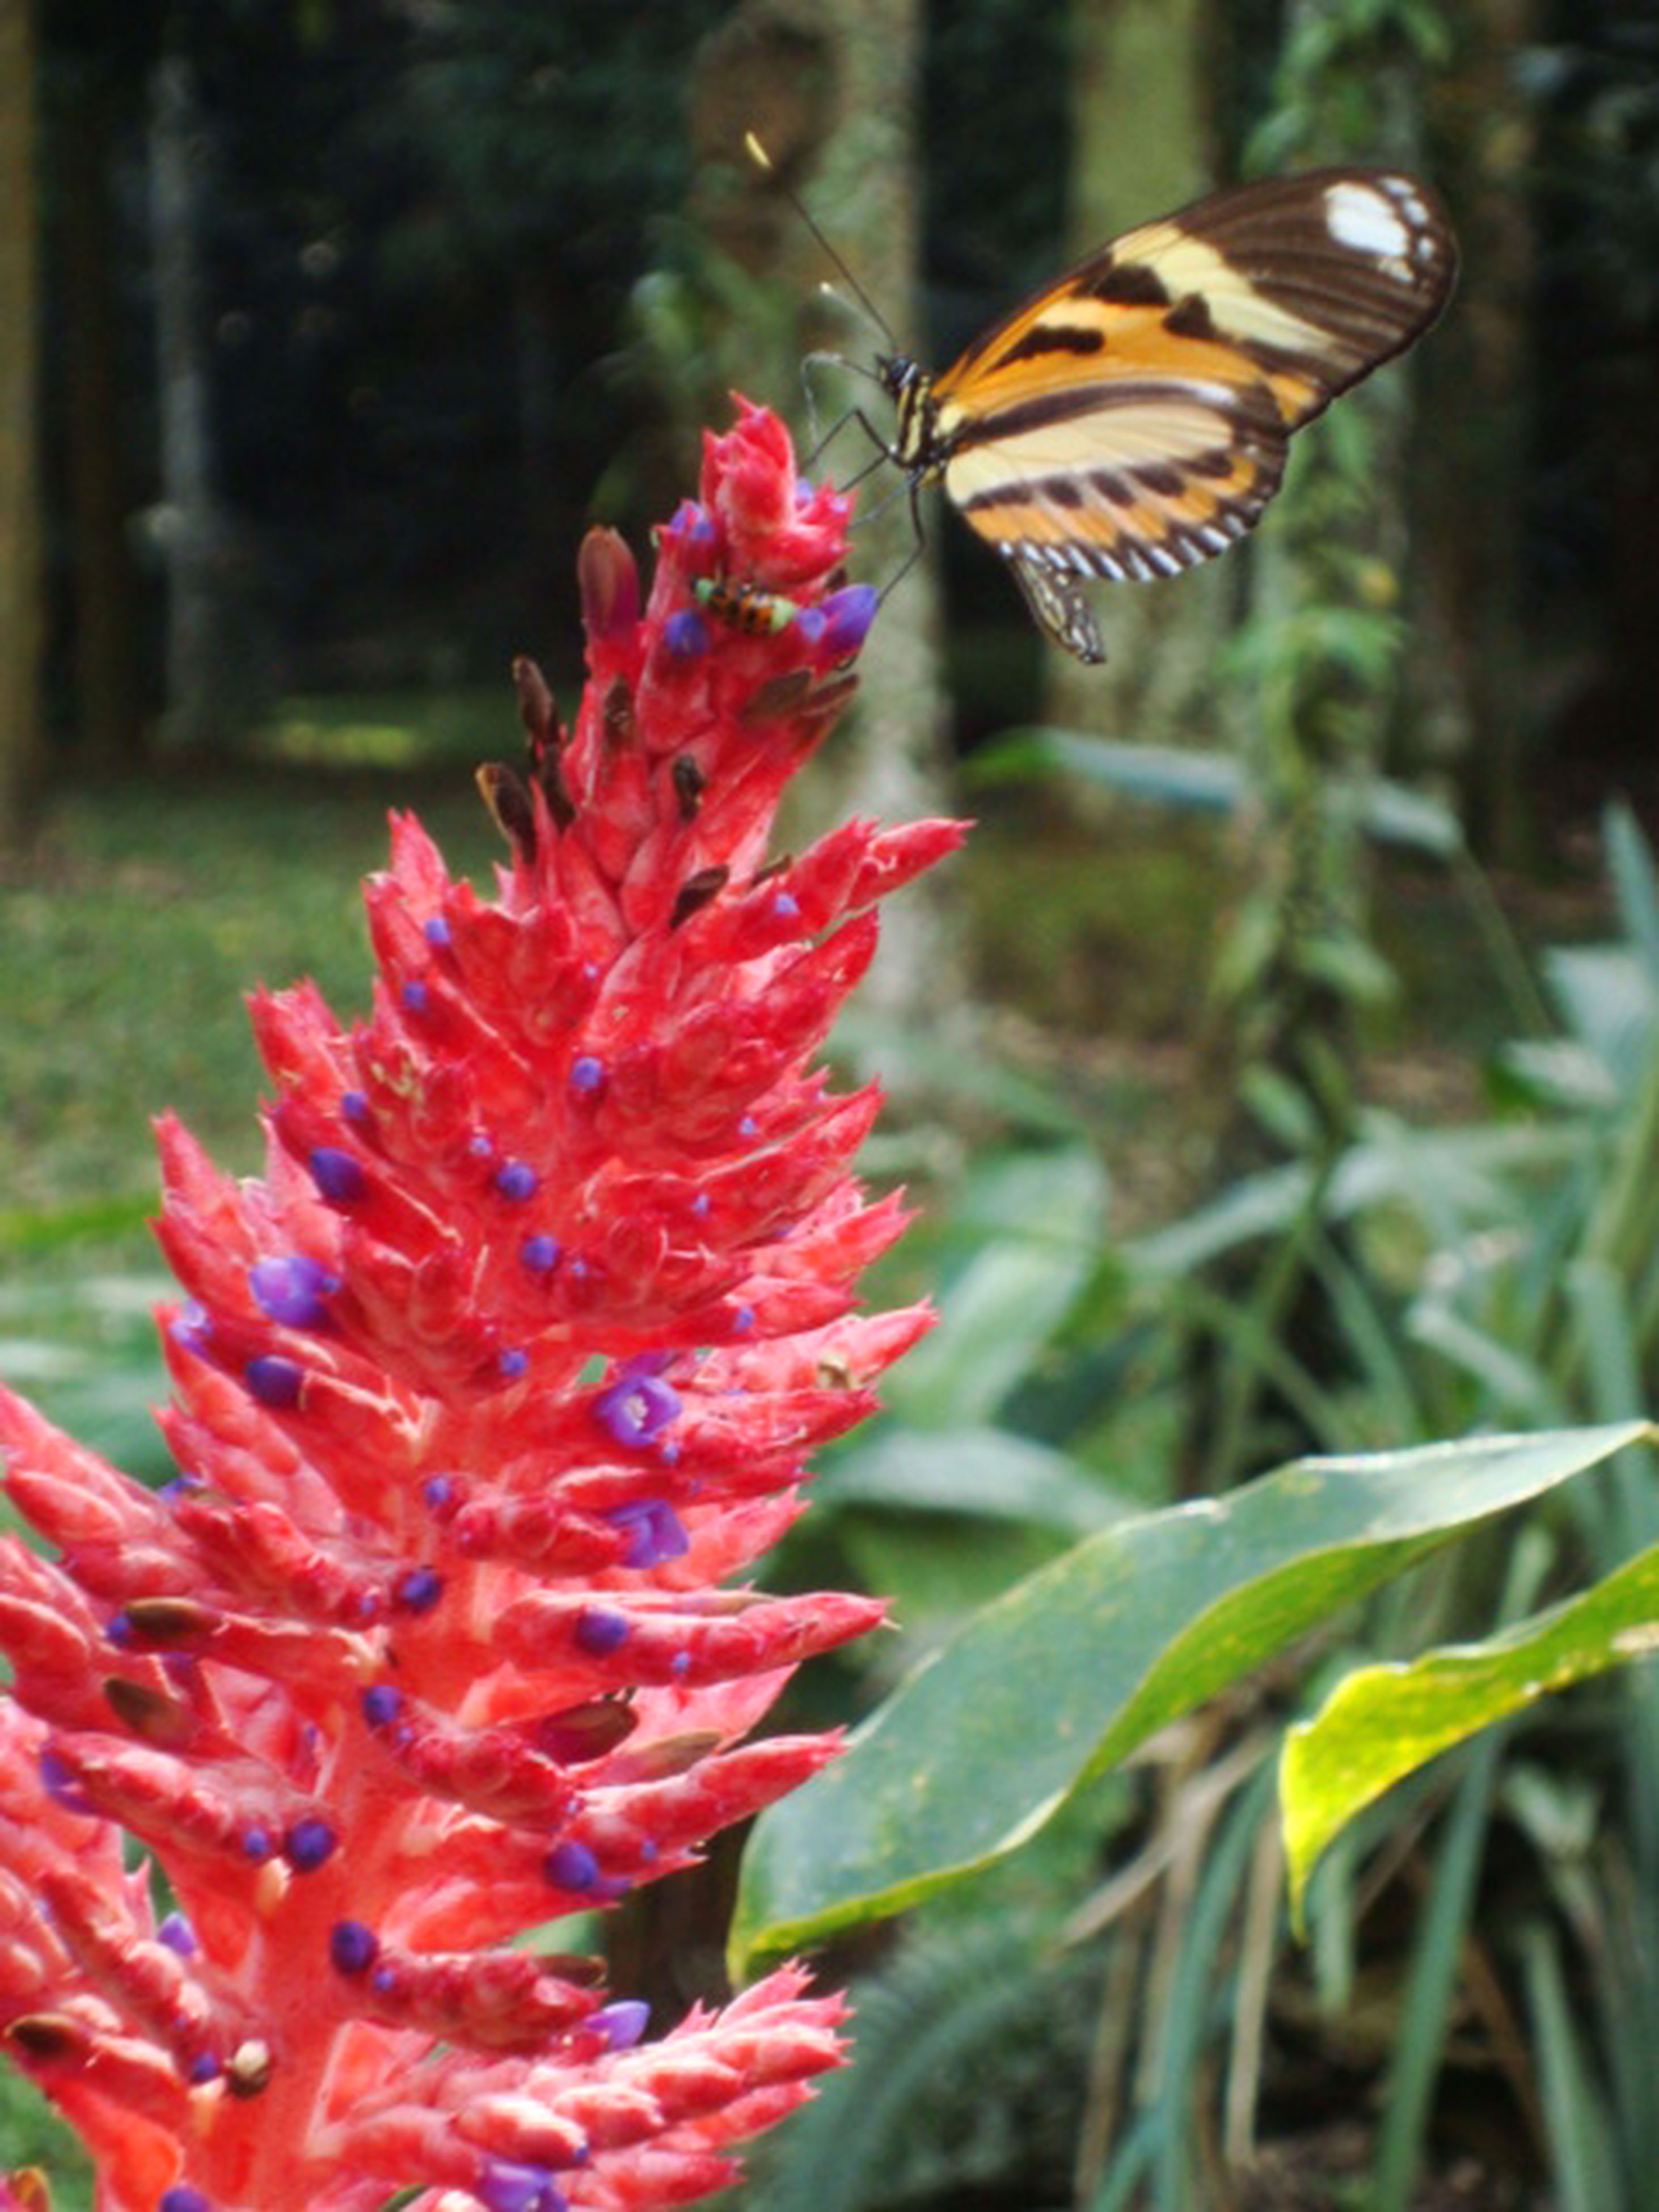 flower, animal themes, animals in the wild, focus on foreground, one animal, wildlife, insect, petal, freshness, fragility, growth, beauty in nature, close-up, plant, nature, butterfly - insect, flower head, blooming, park - man made space, red